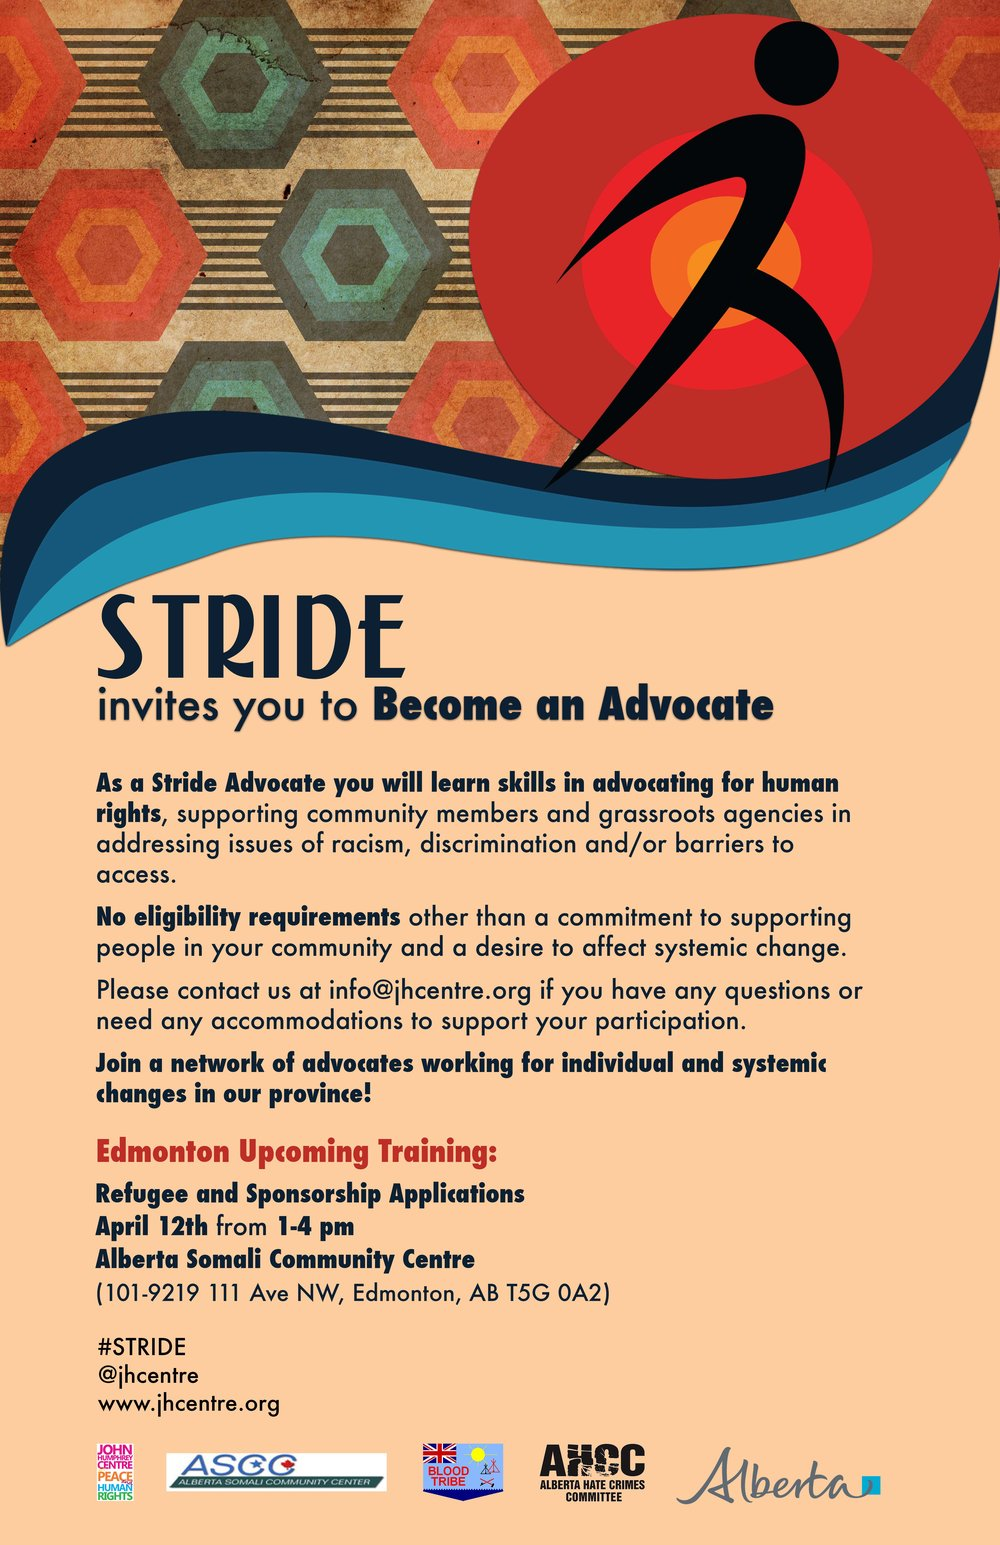 Stride Advocate Edmonton April 12.jpg